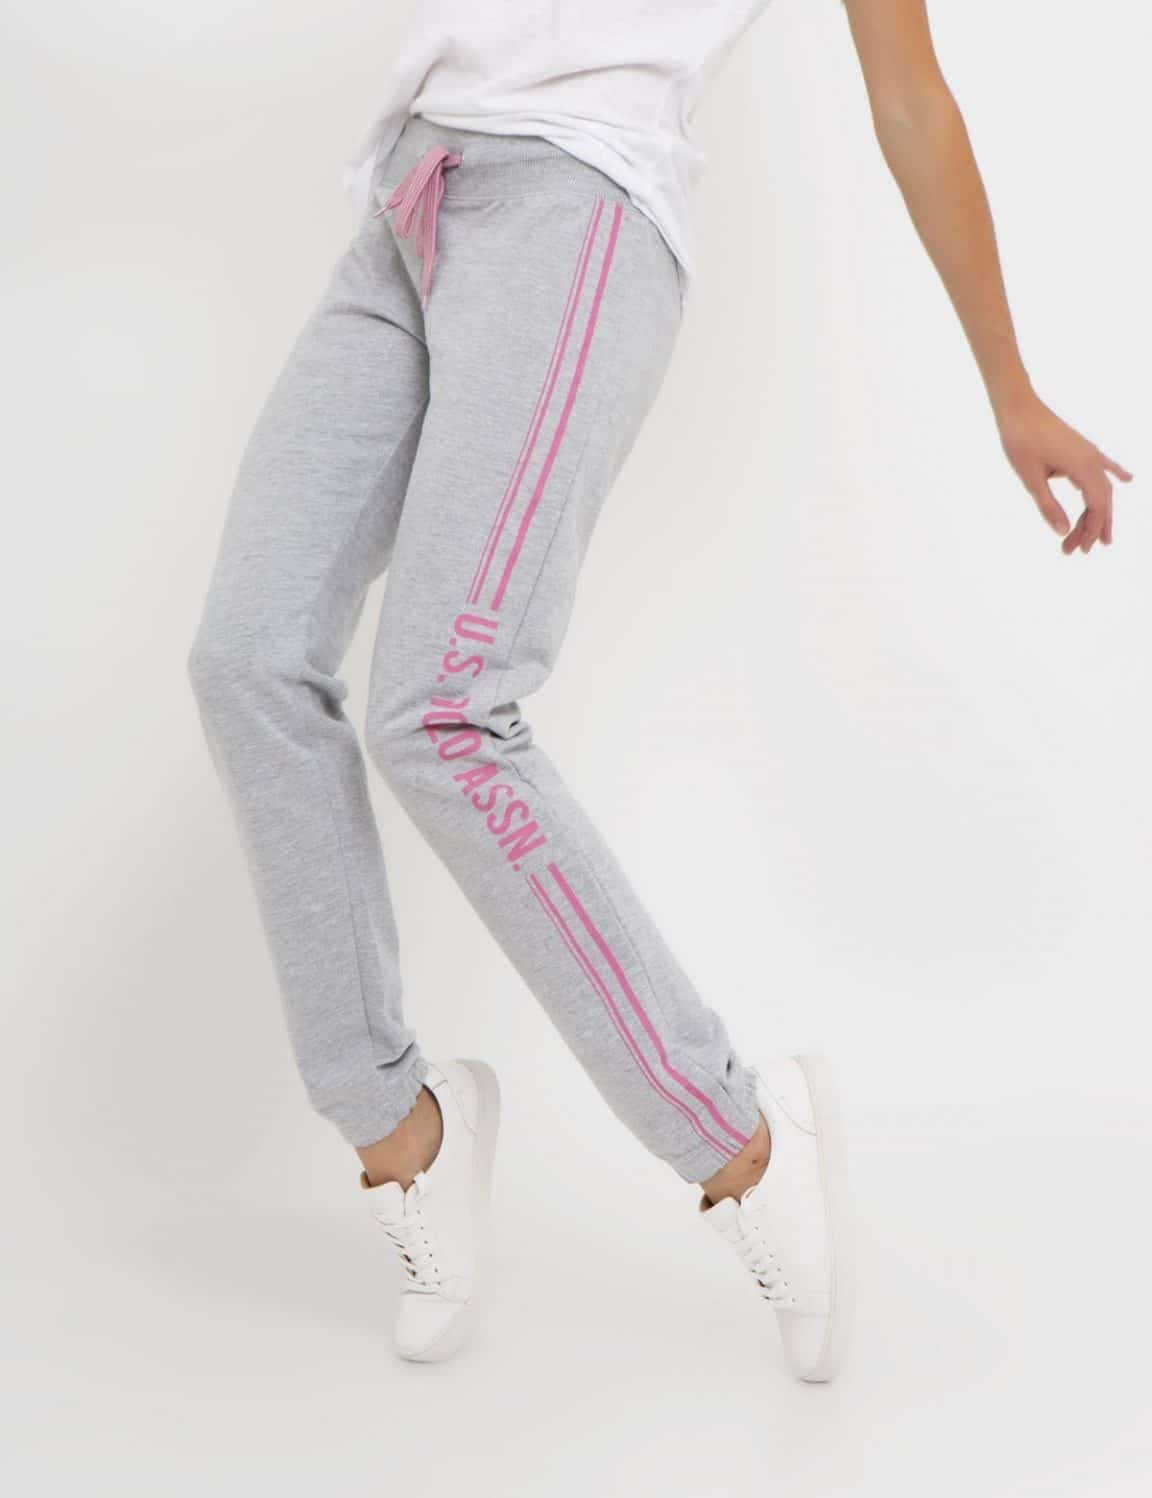 A type of sweatpants for women.